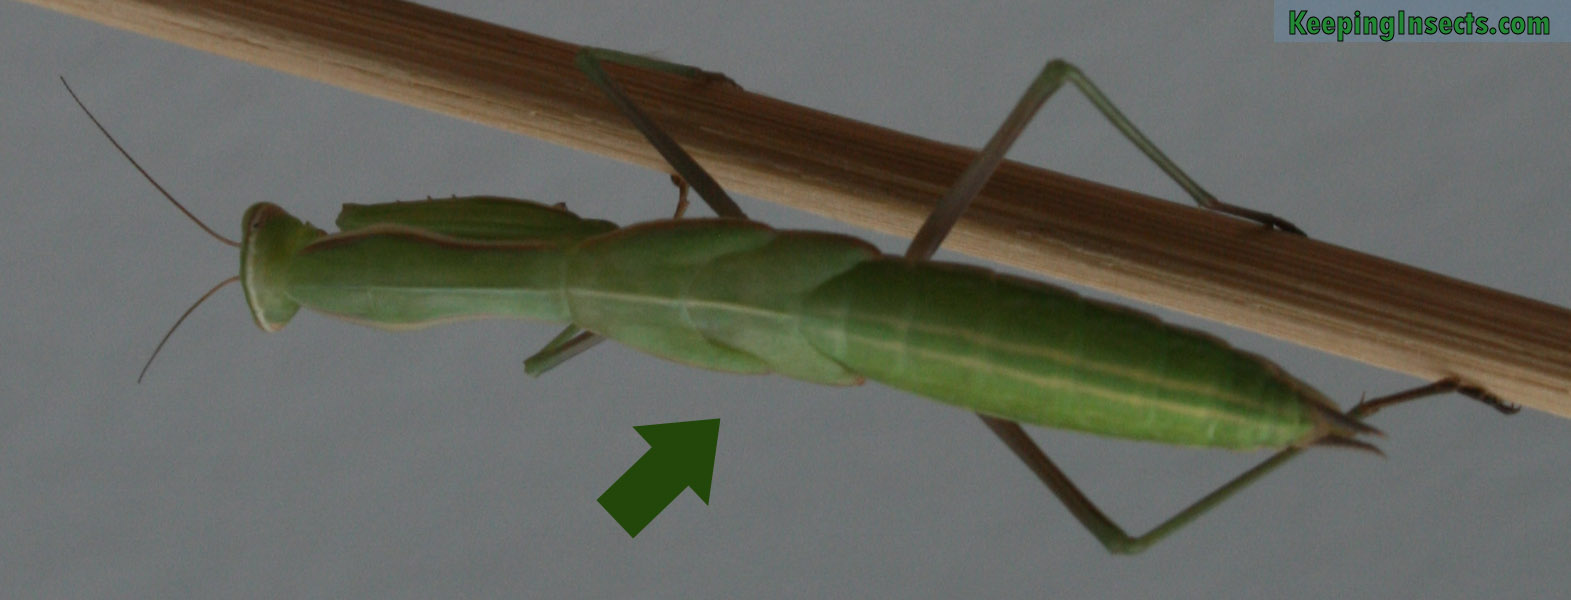 FAQ about praying mantises | Keeping Insects